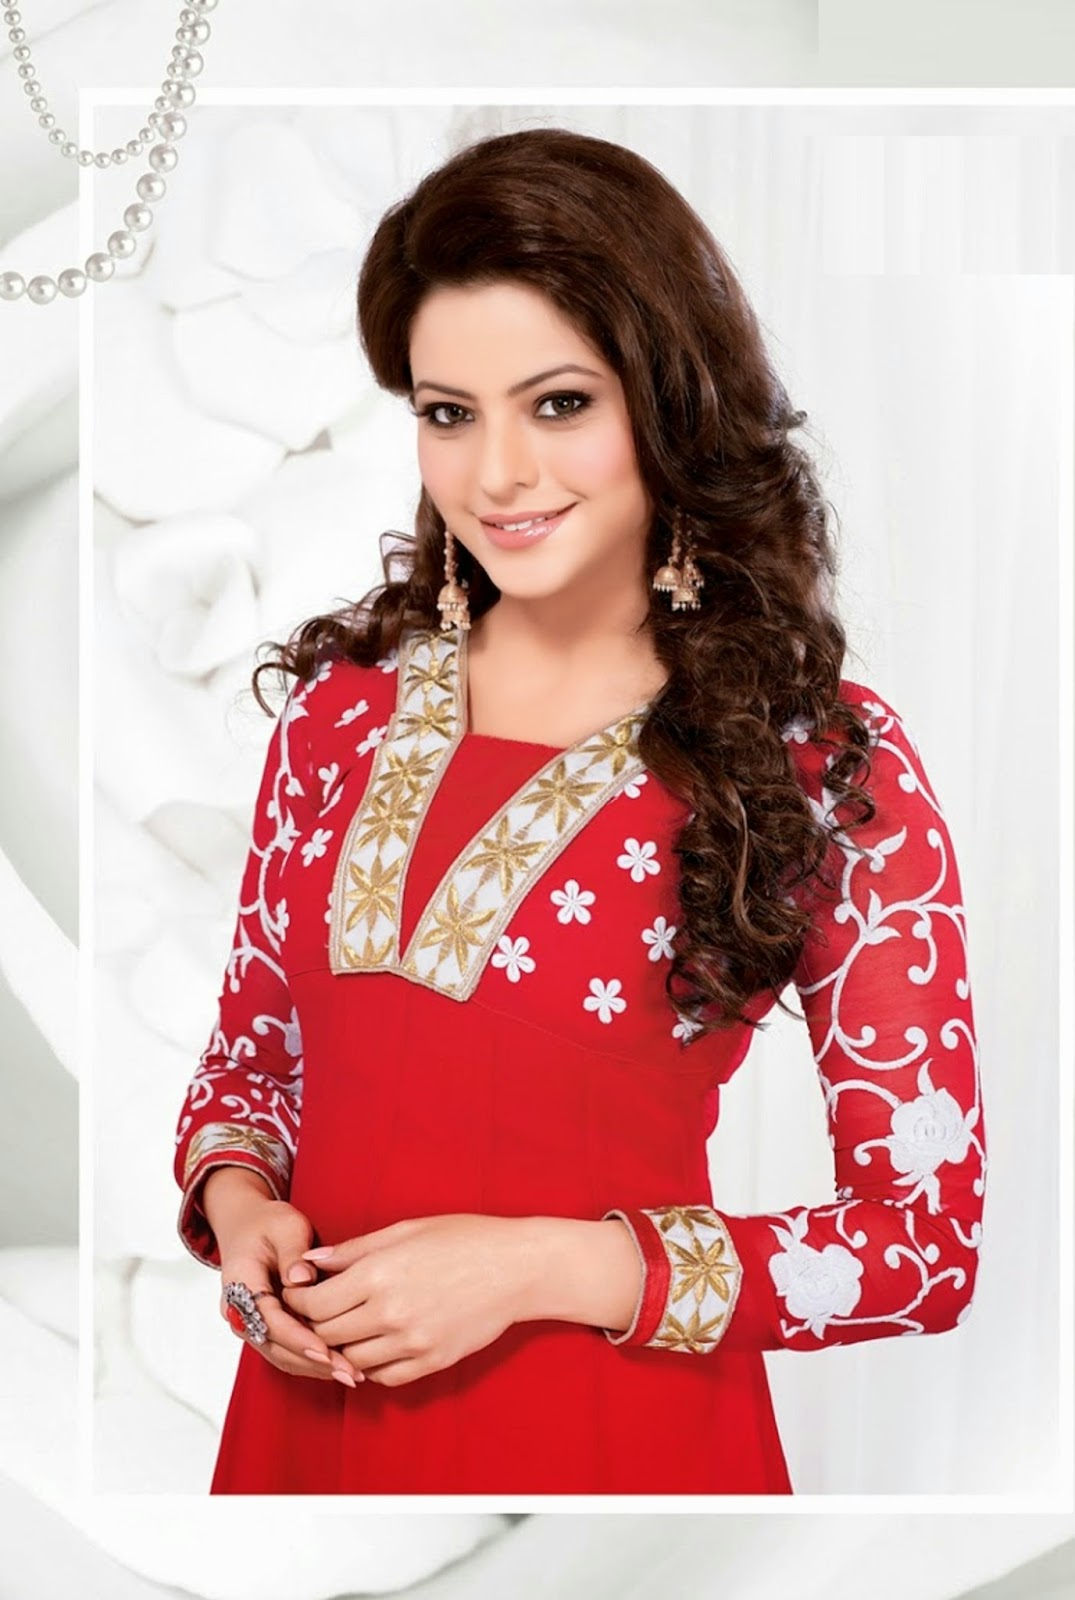 Very Beautiful Blond Teen Girl With: Very Beautiful And Smart Aamna Sharif Image Download